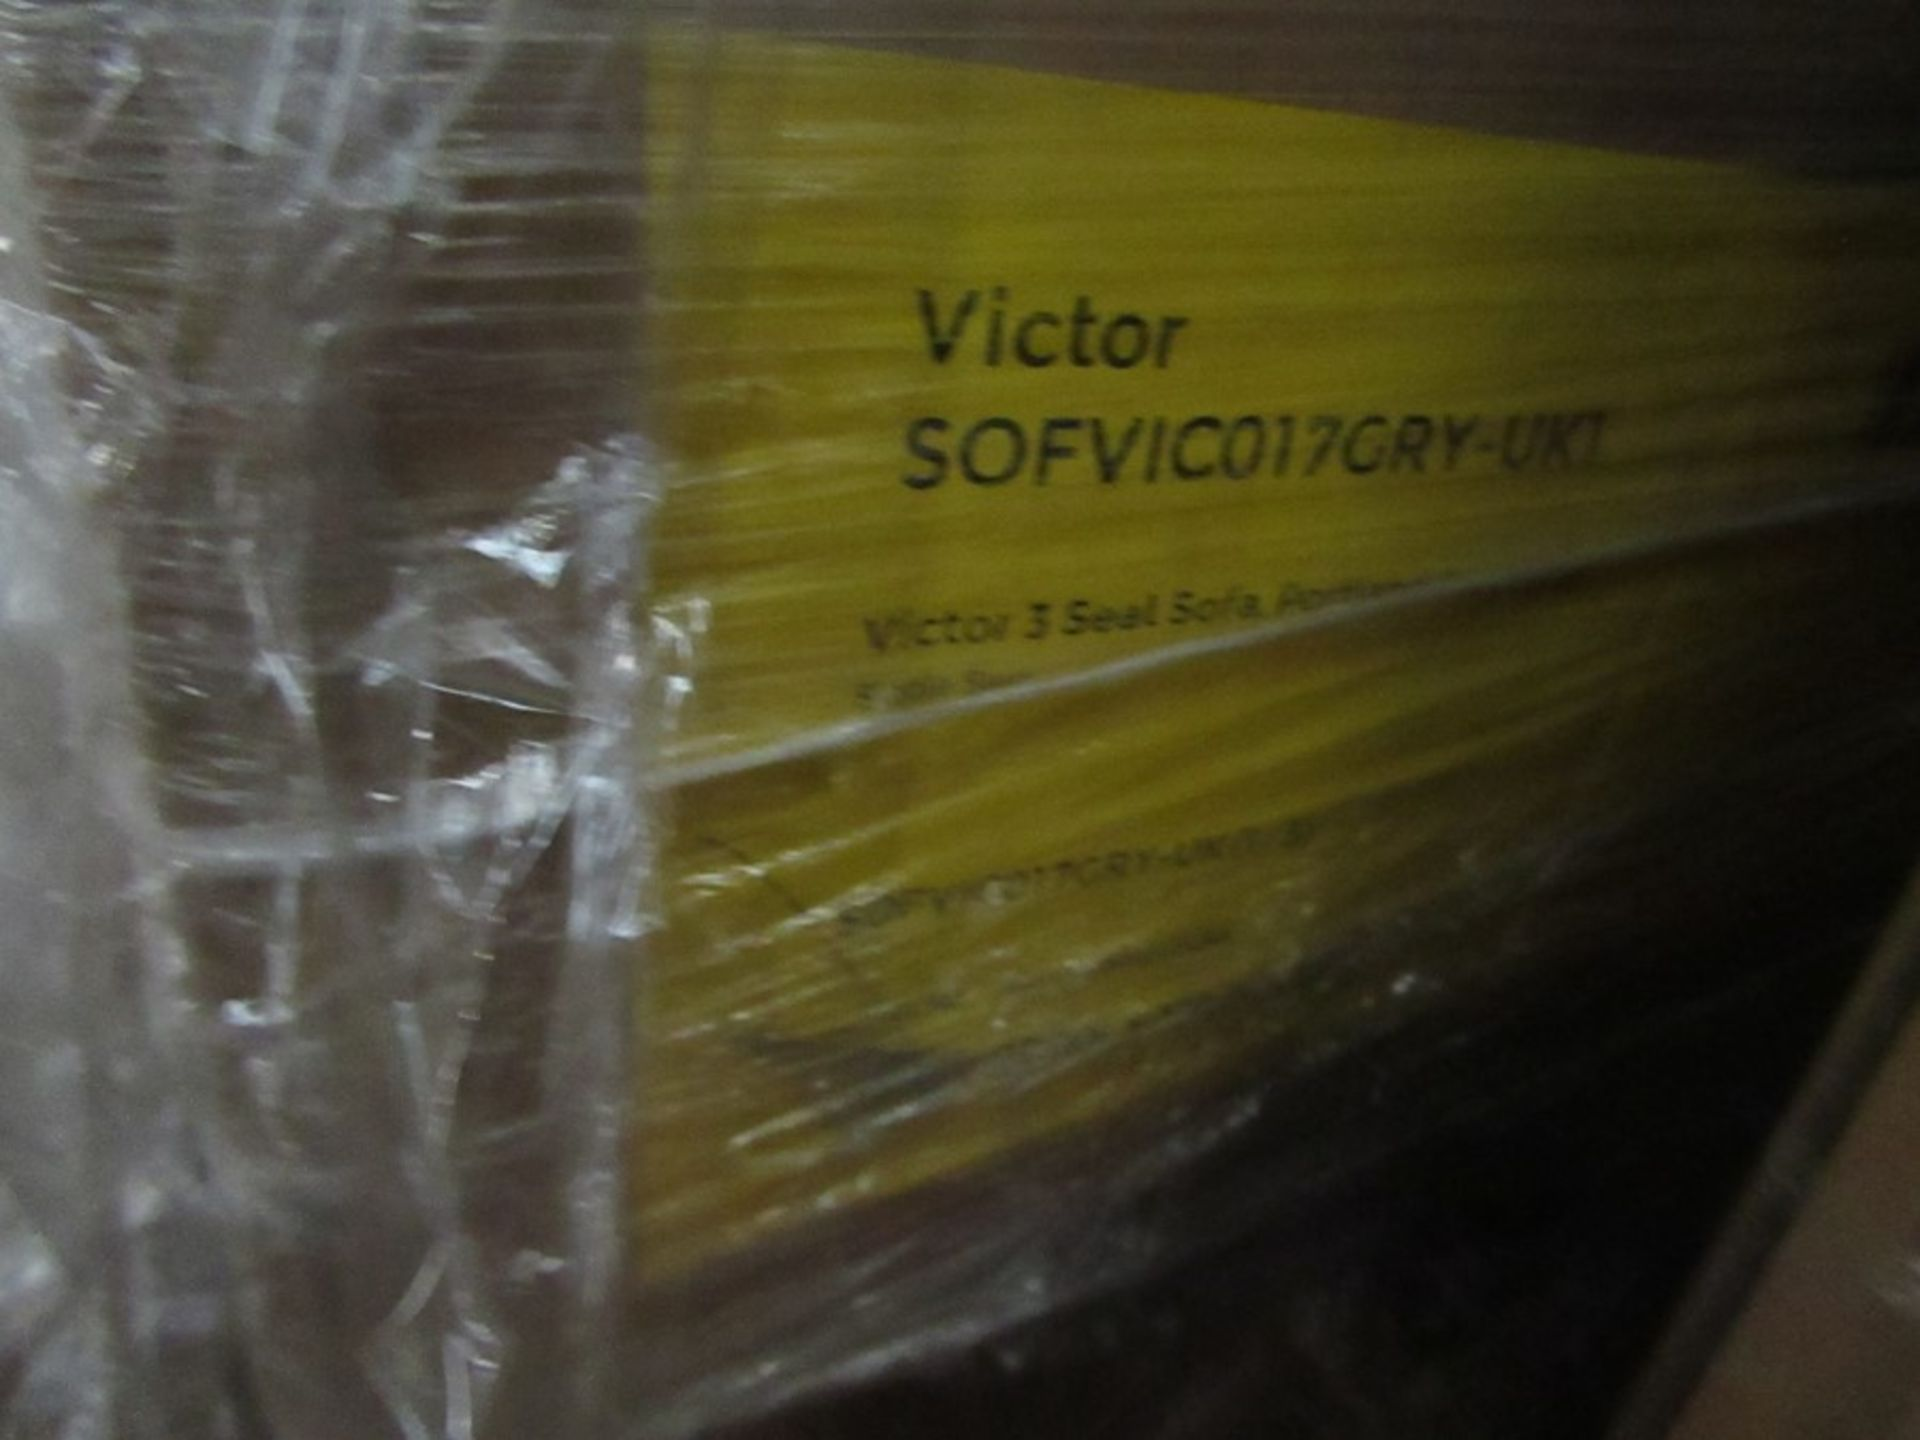   16x   PALLETS OF MADE.COM UNMANIFESTED SOFA PARTS, THESE ARE FROM VARIOUS SOFAS AND DONT APPEAR TO - Image 26 of 34